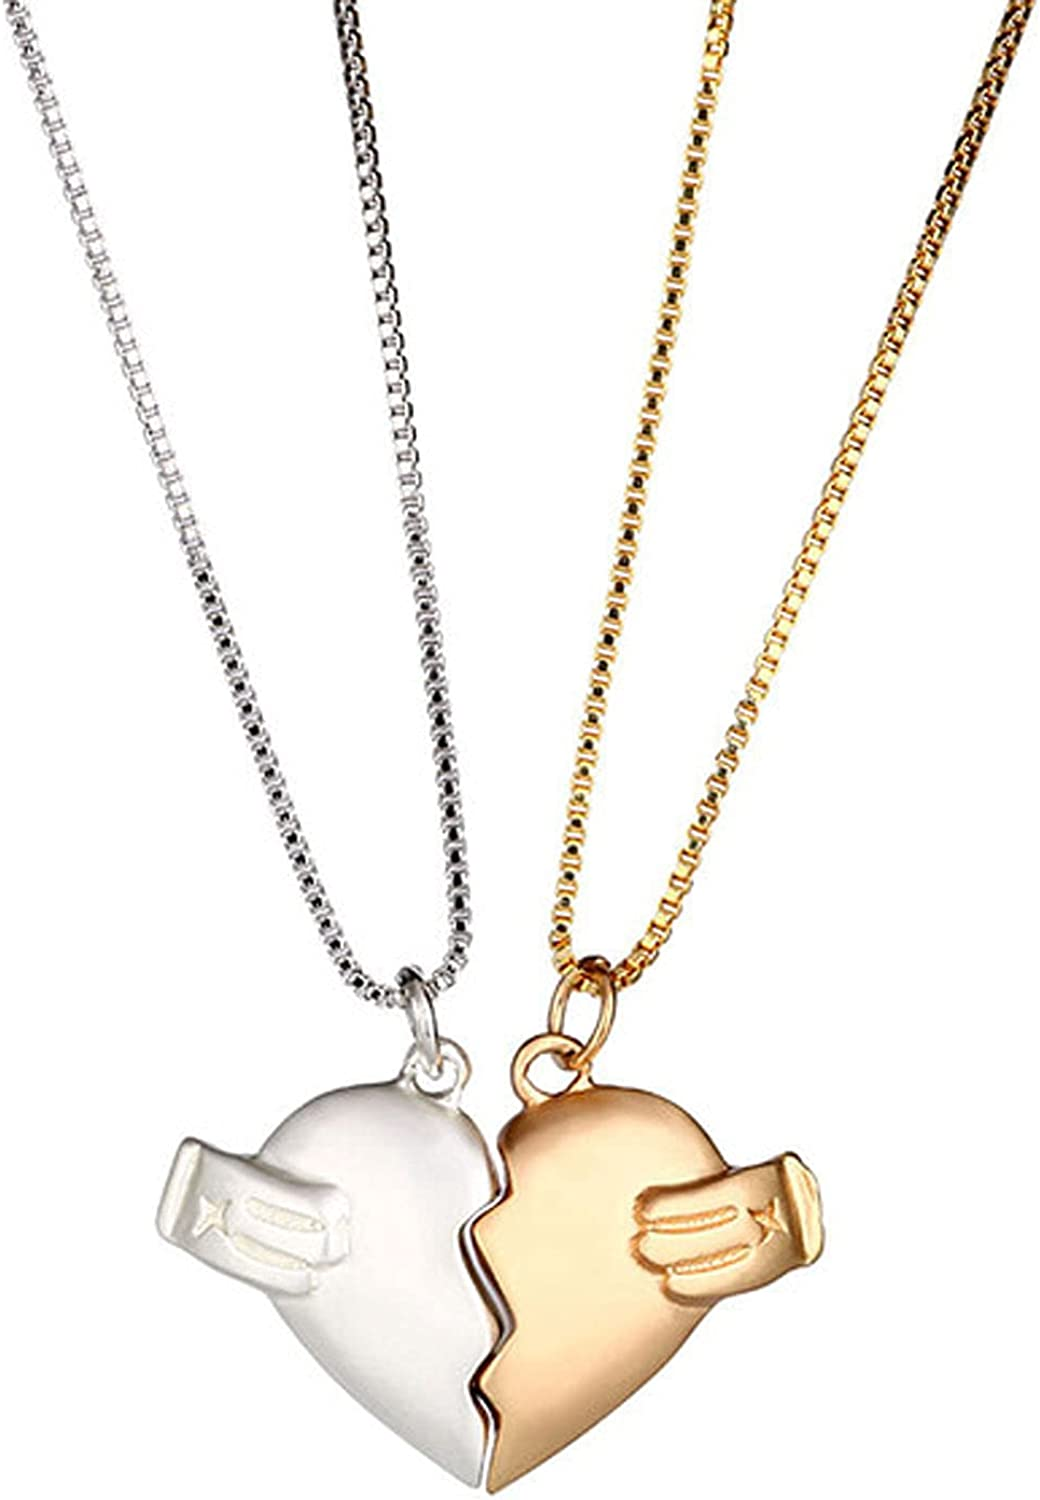 Scddboy Heart Pendant Necklaces for Couple, Matching Magnetic Necklaces for Best Friends